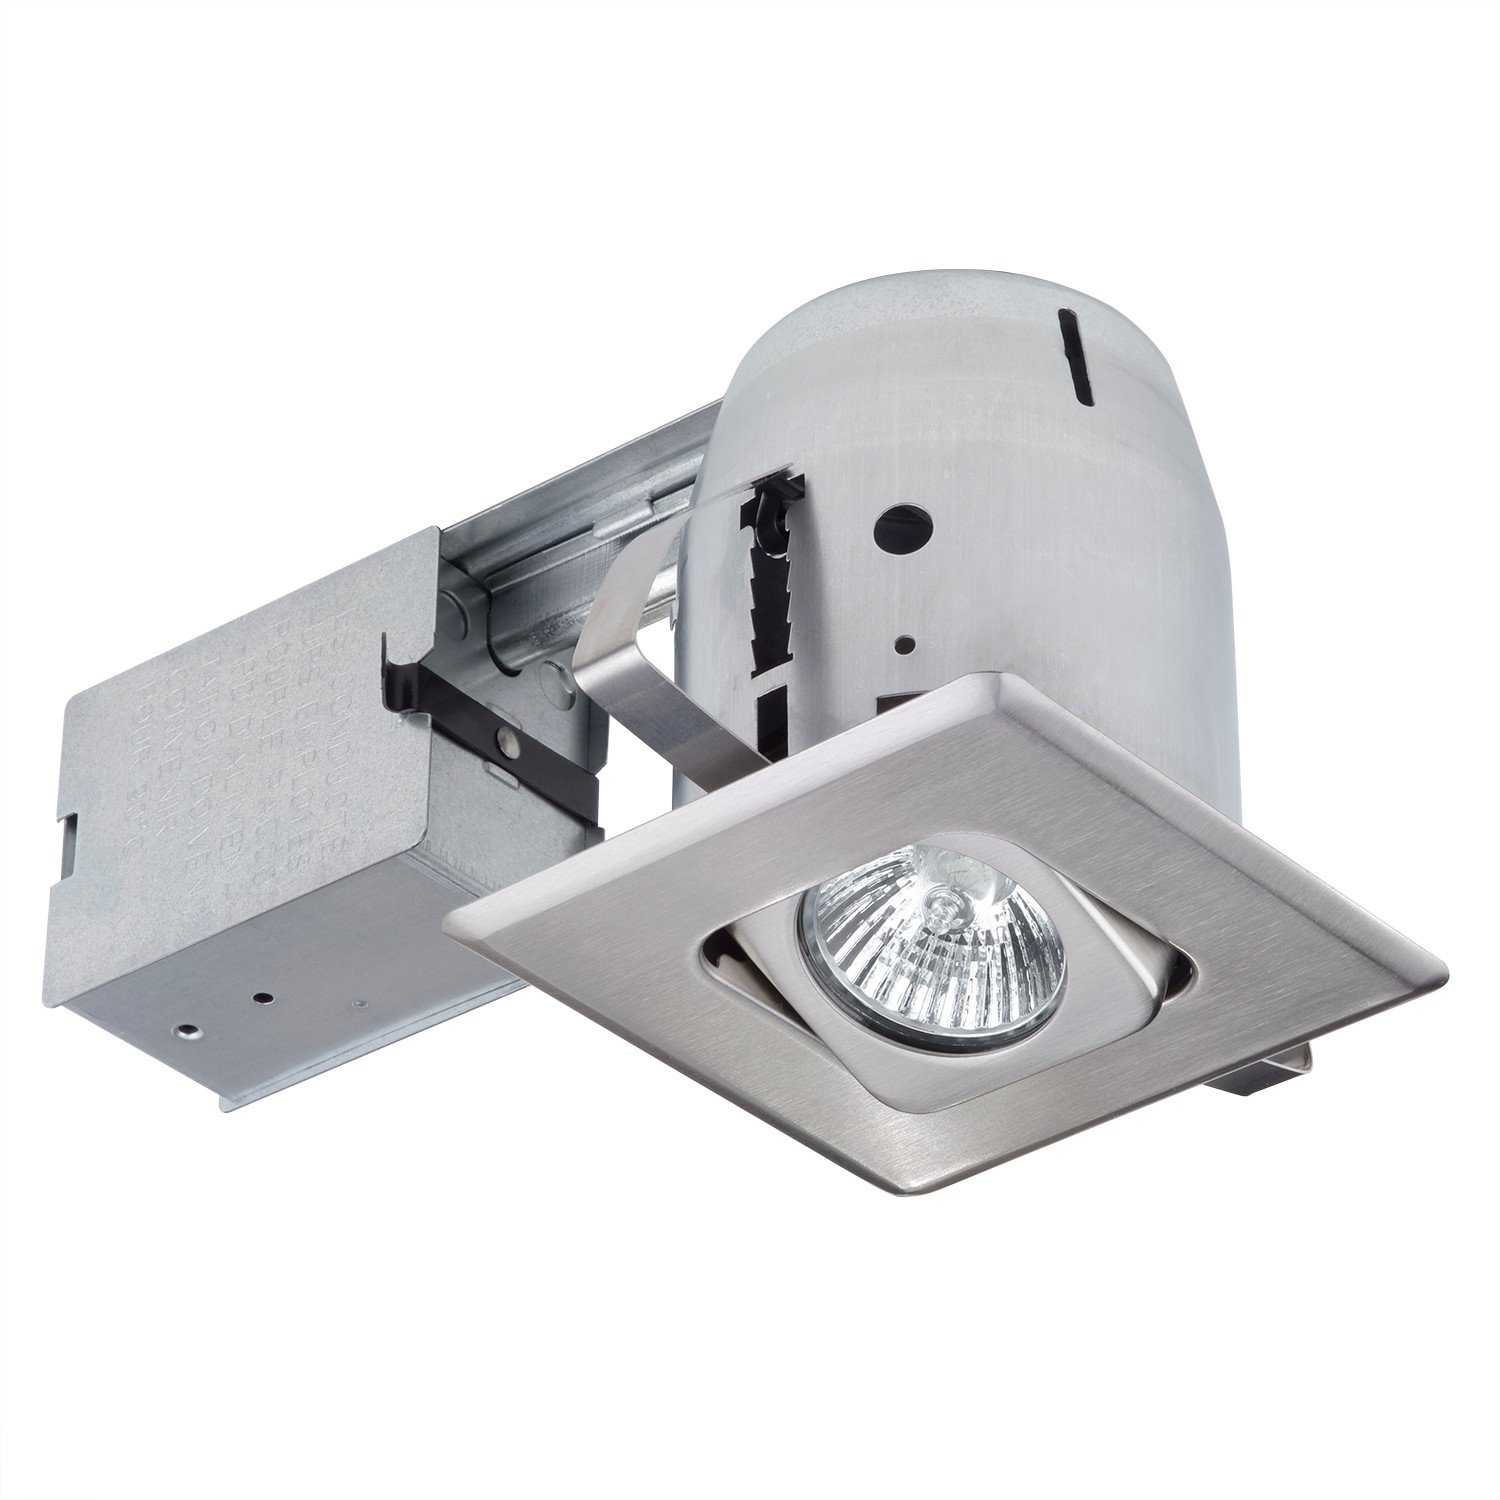 4  Dimmable Downlight Swivel Spotlight Recessed Lighting Kit Easy Install Push-N-Click Clips (1-Pack) Brushed Nickel Square Trim Globe Electric 90039  sc 1 st  eBay & 4